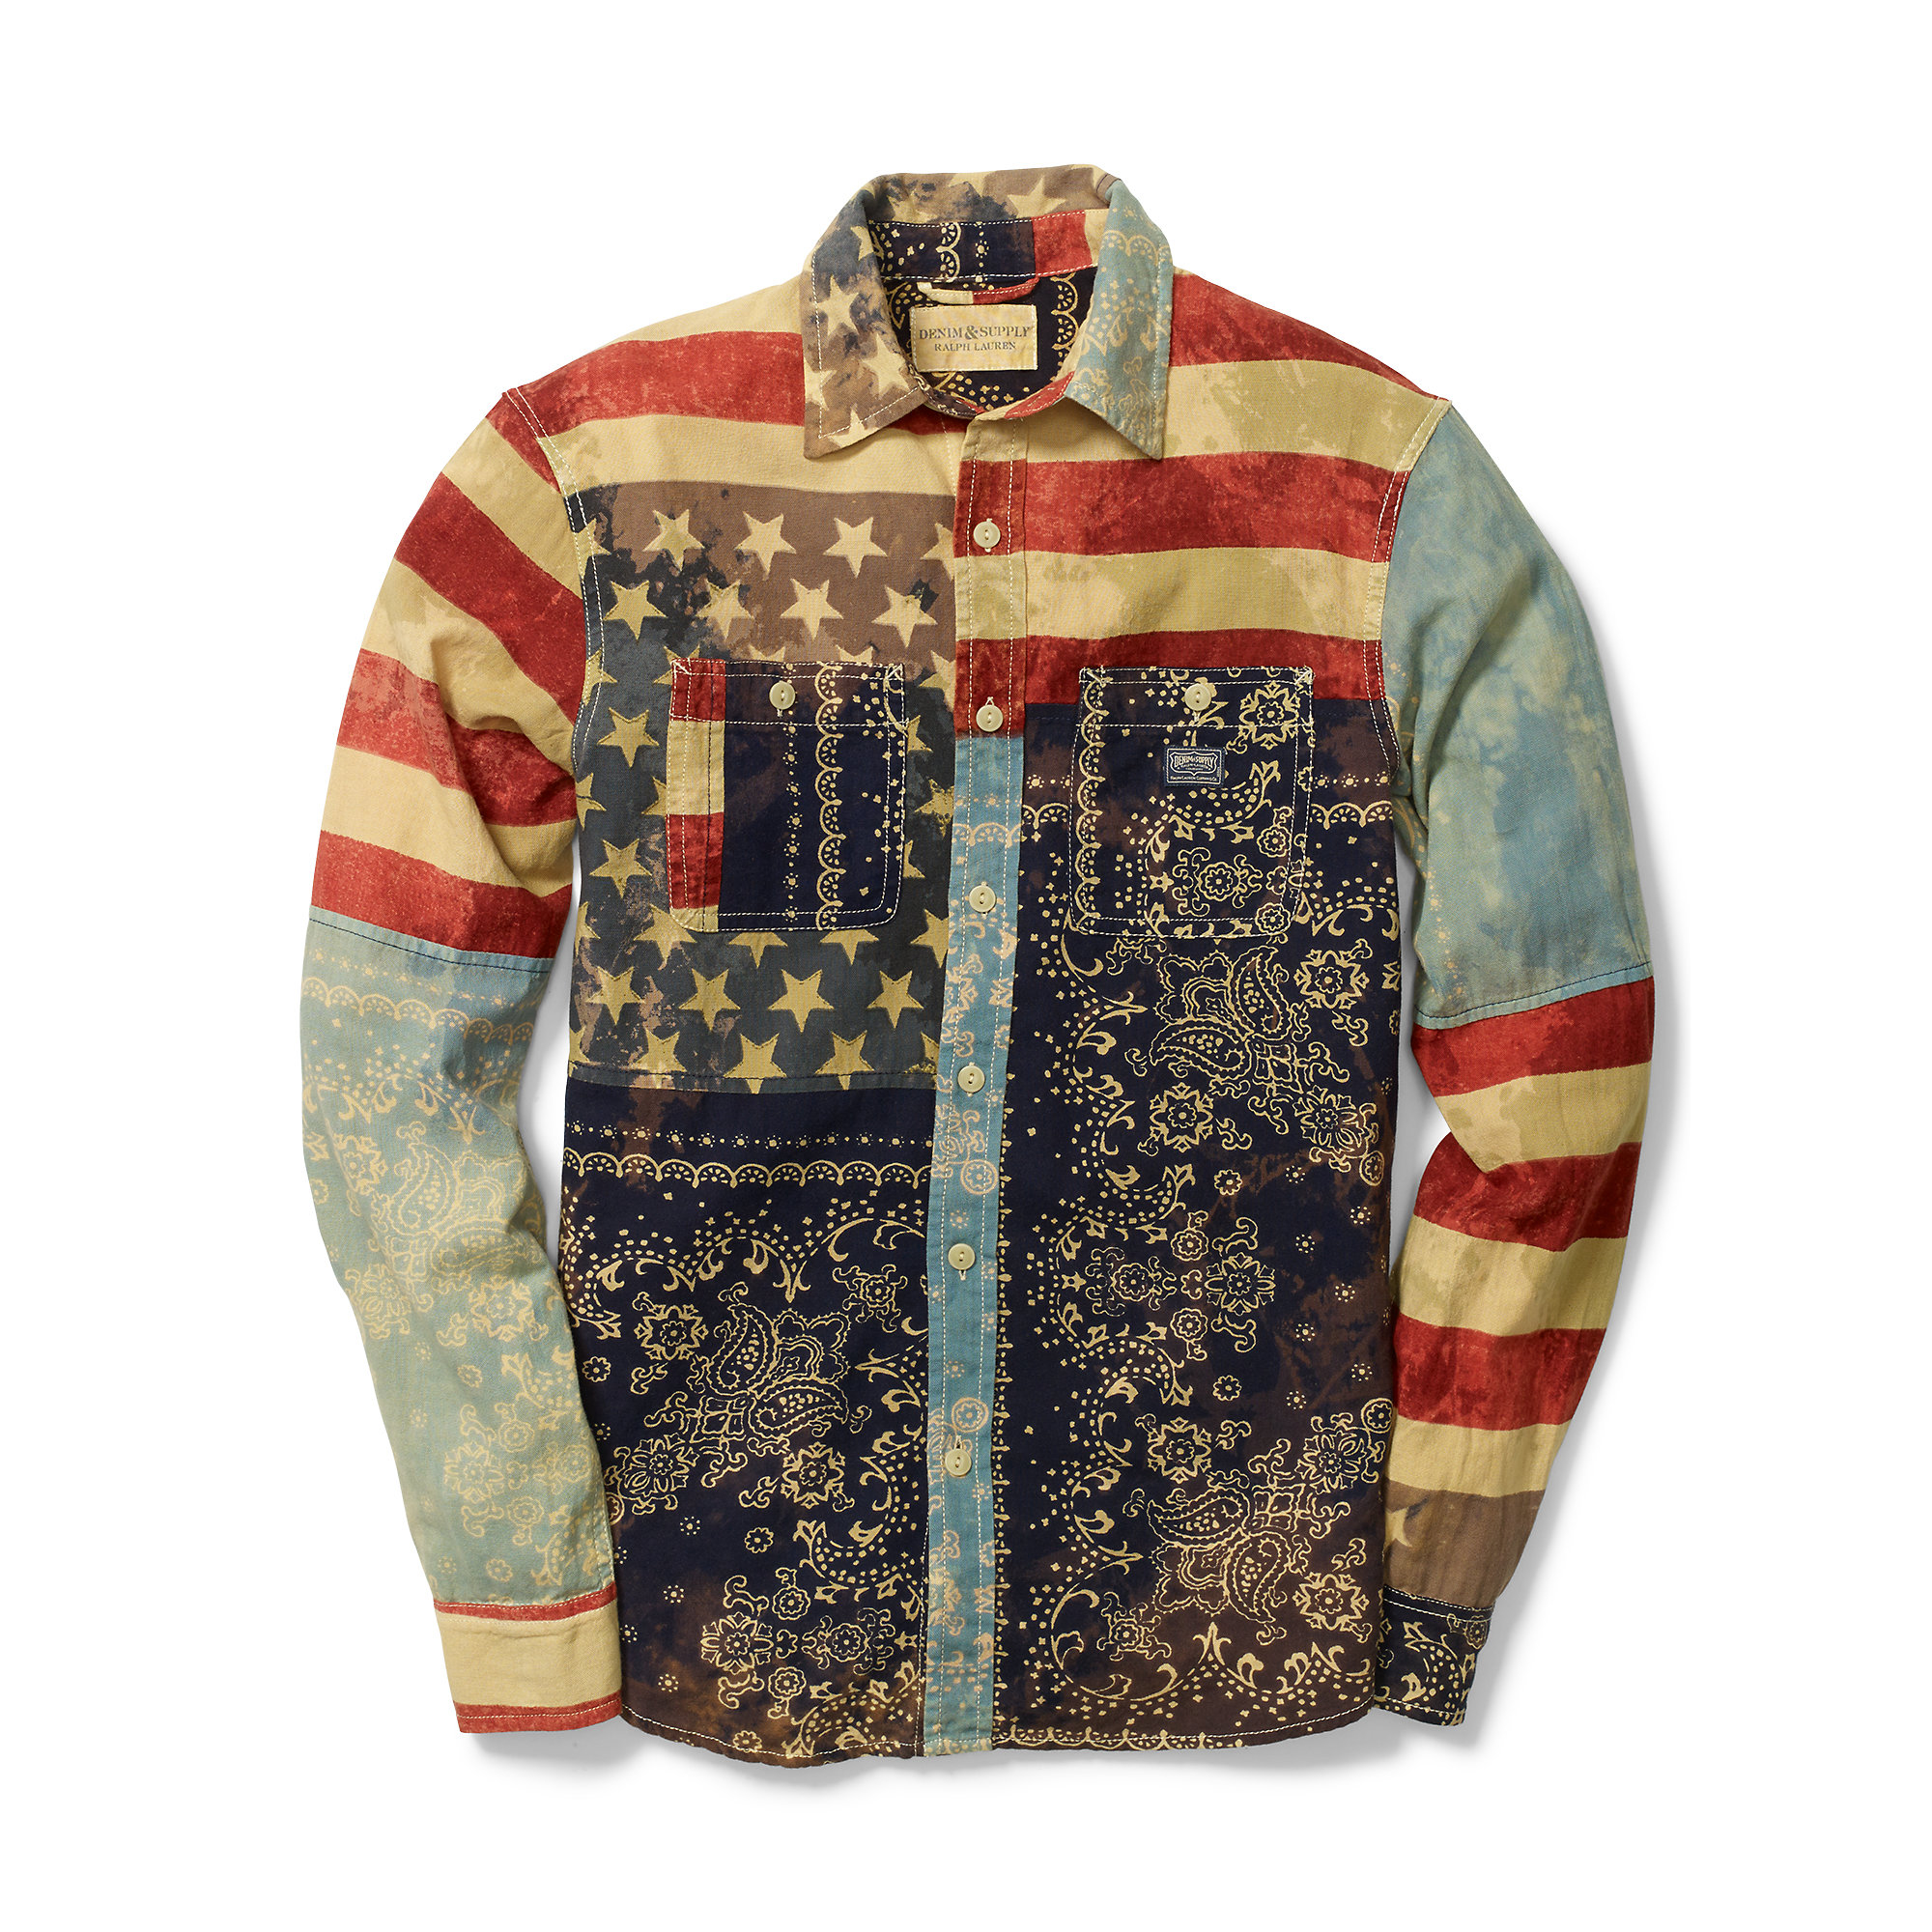 be972f608e Lyst - Denim   Supply Ralph Lauren Ward Americana Cotton Shirt in ...